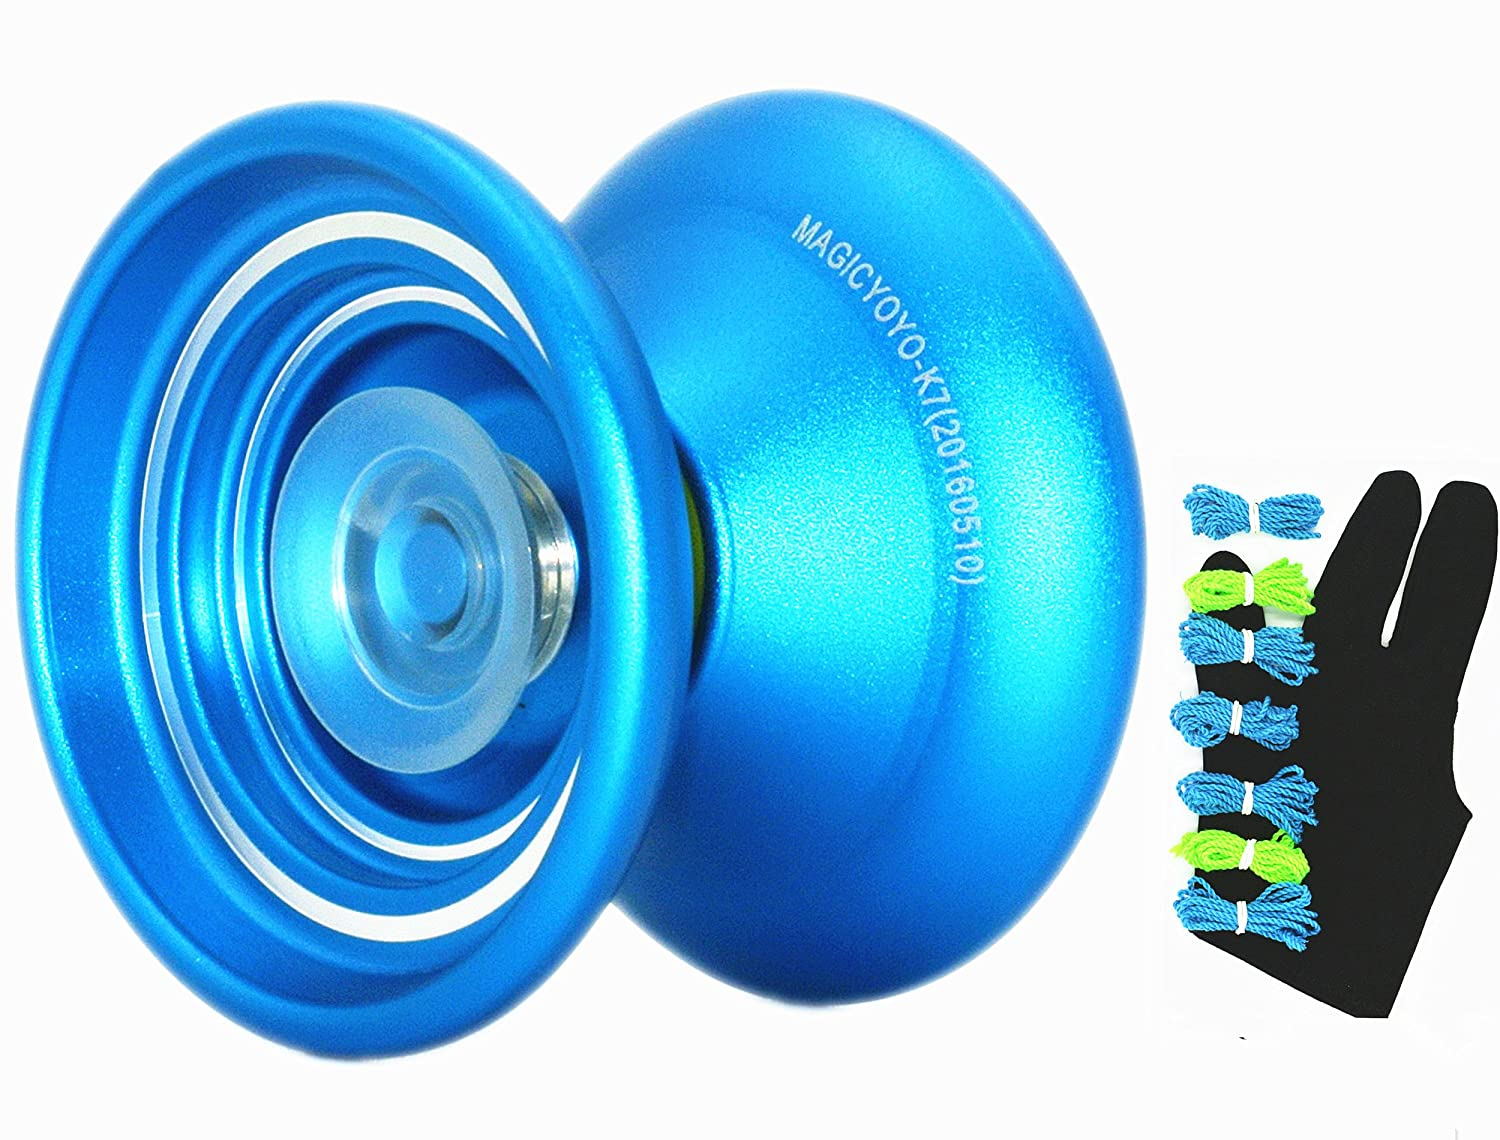 Responsive Metal YOYO Professional Yoyo Magicyoyo K7 For Beginners With 7 Strings + 1 Glove(BLUE)